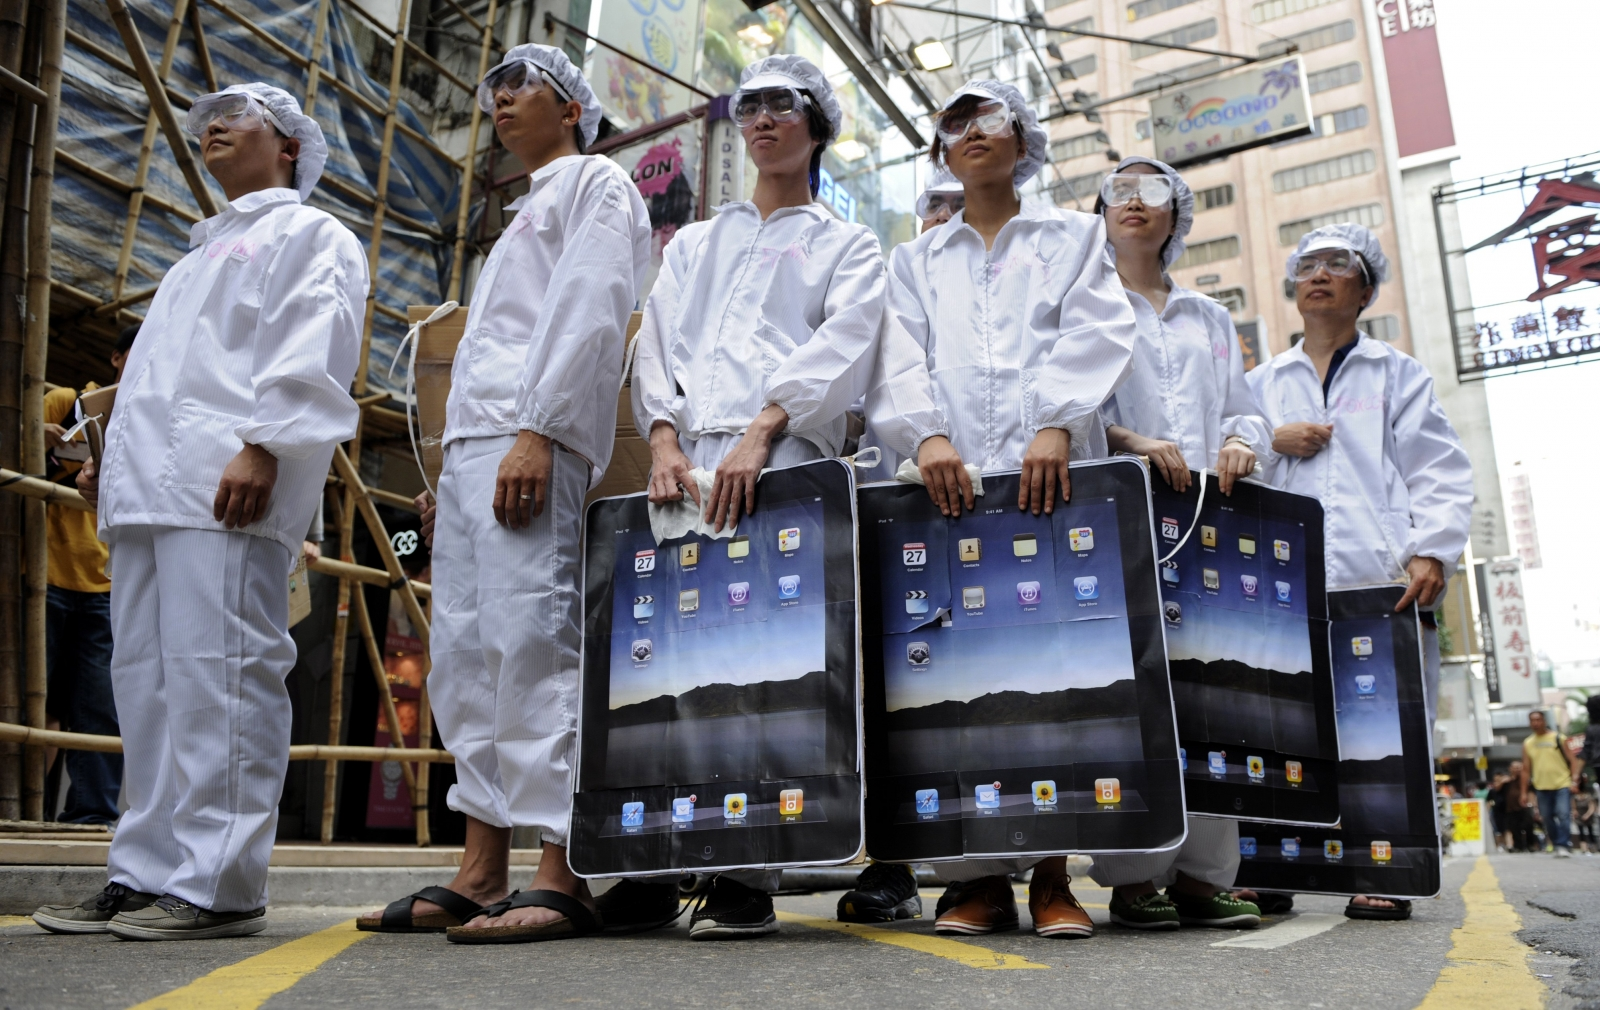 Foxconn workers strike over iPhone 5 demands, labor group says |Foxconn Factory Iphone